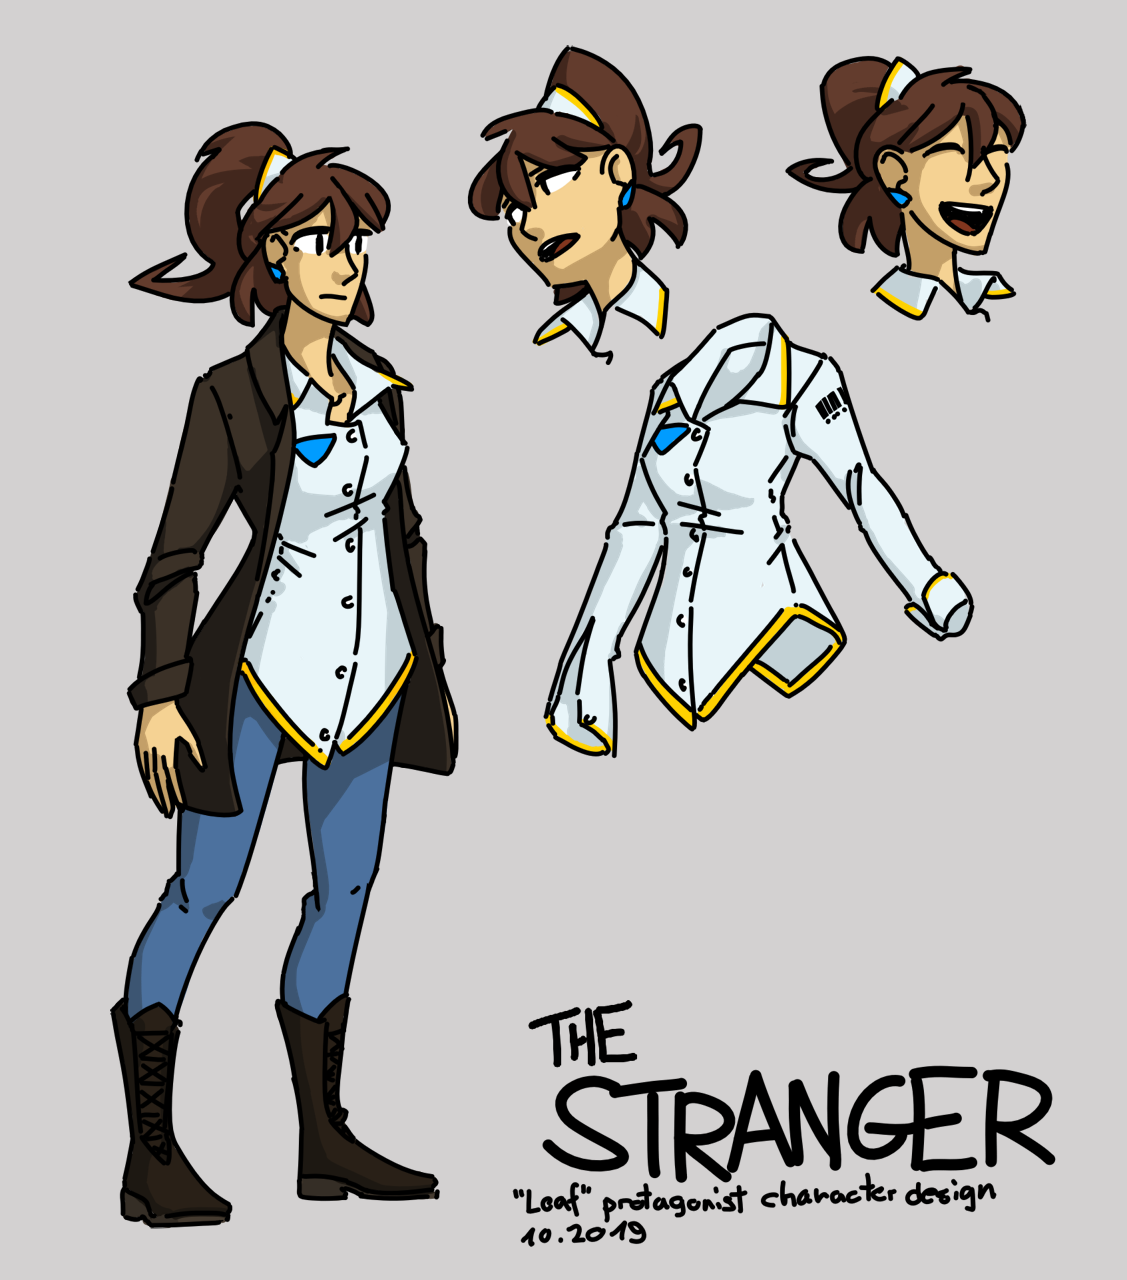 The Stranger's new character design